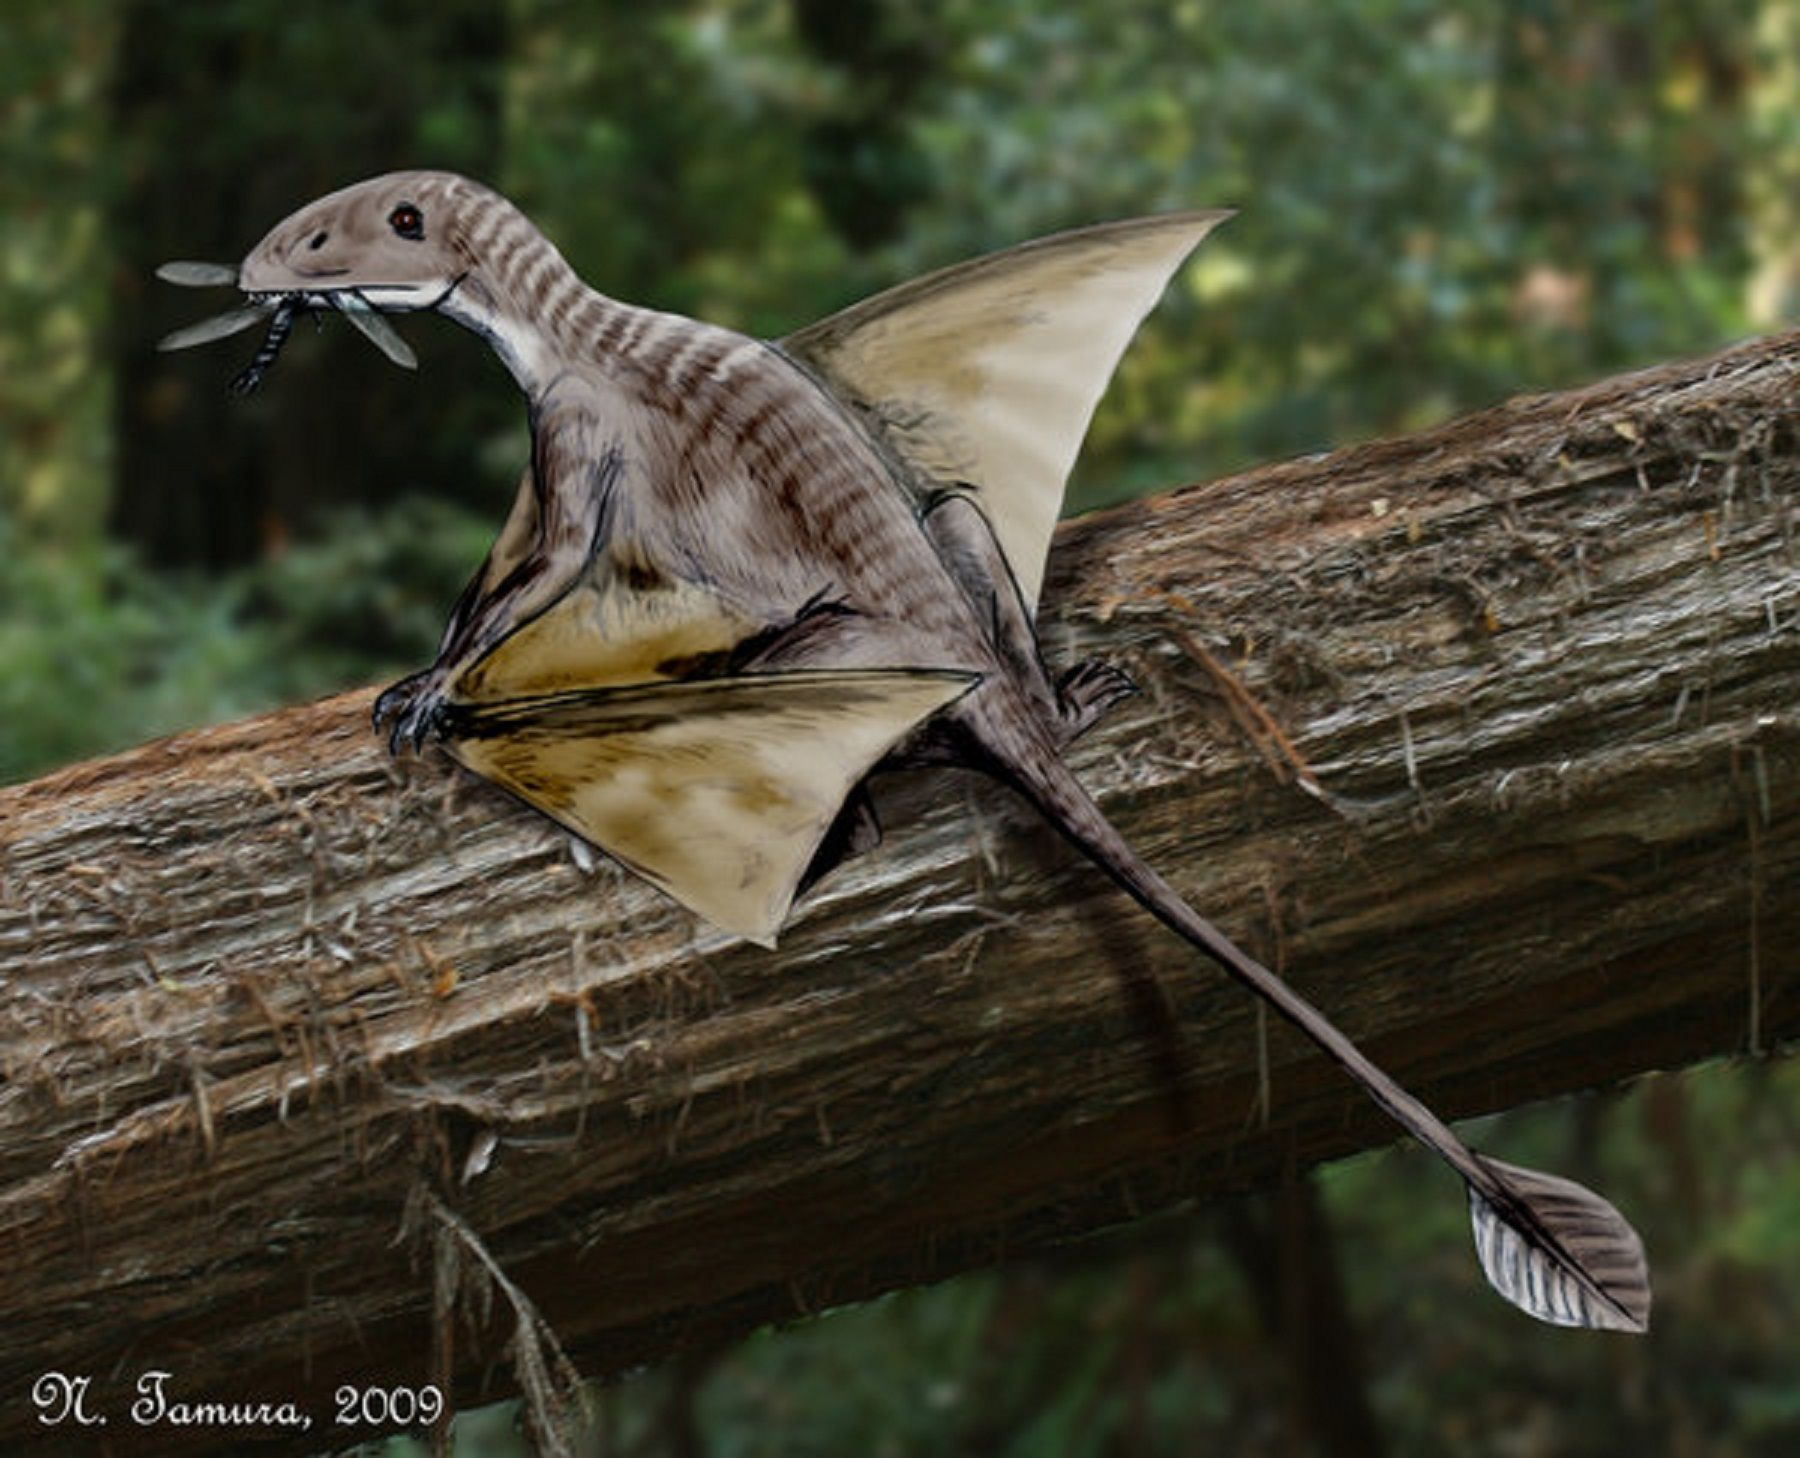 Art illustration - pterosaurs - Peteinosaurus: It is a genus of pterosaur Dimorphodontidae ranforrincoideo of the family. He probably lived on the continent of Pangea in the mid-Triassic Norian (about 221-210 million years ago). He lived on the shores of the ancient Tethys Sea, where today the foothills of the Alps are in northern Italy. has a long tail (20 cm) Their wings were also proportionally lower than those of pterosaurs late.